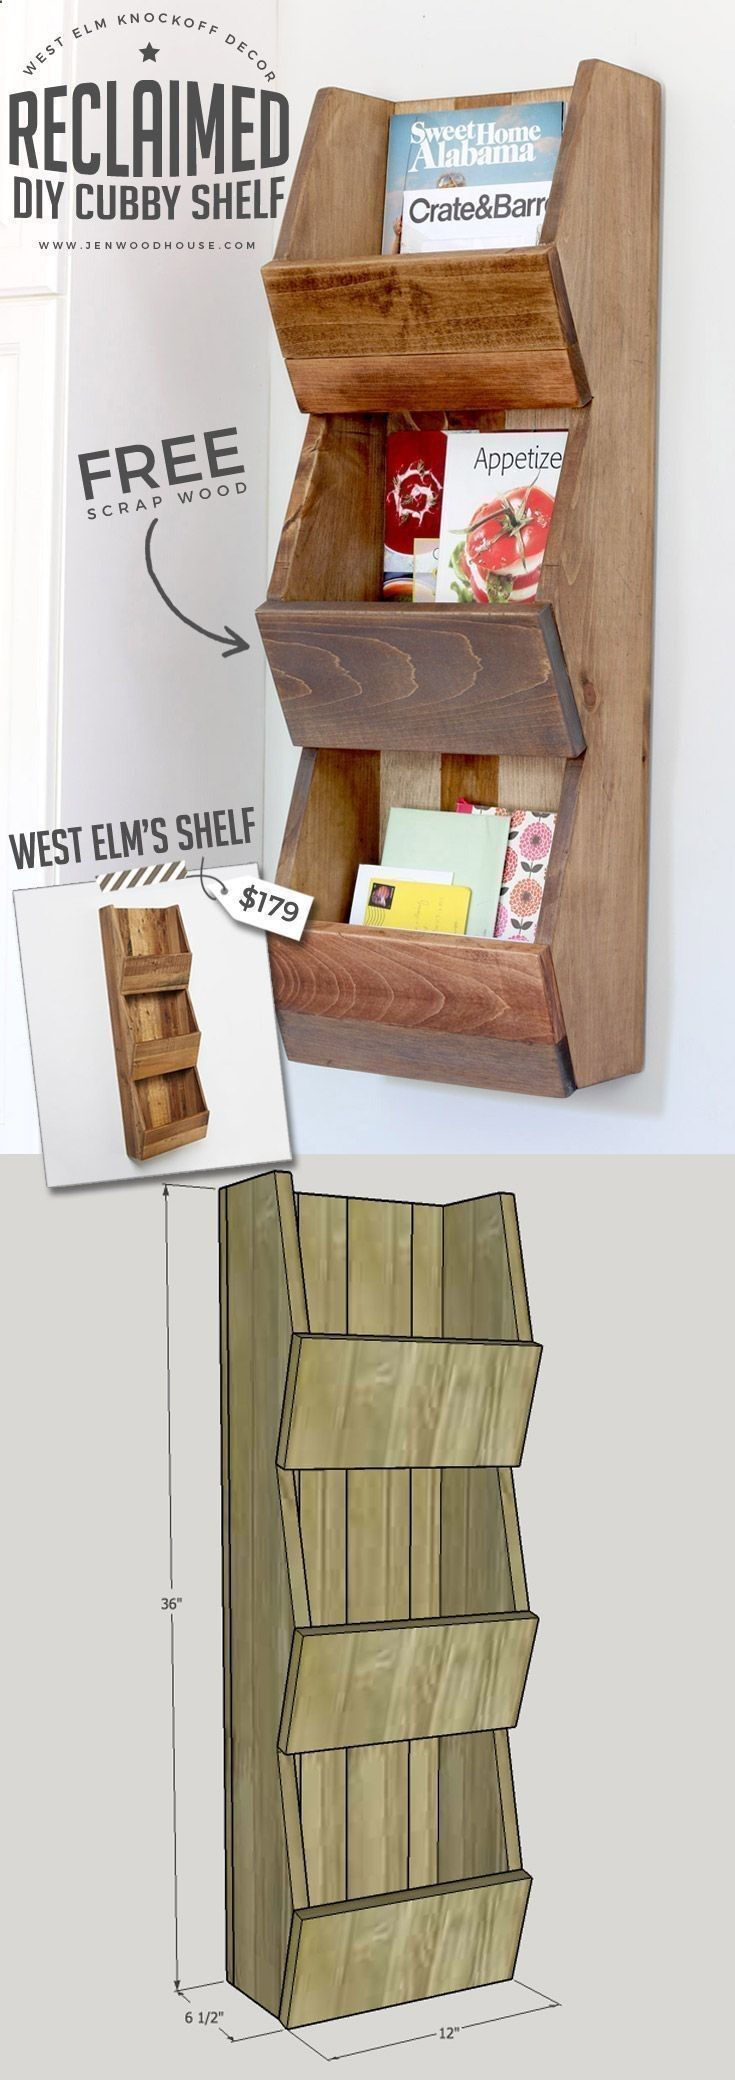 Plans of woodworking diy projects love this tutorial on how to